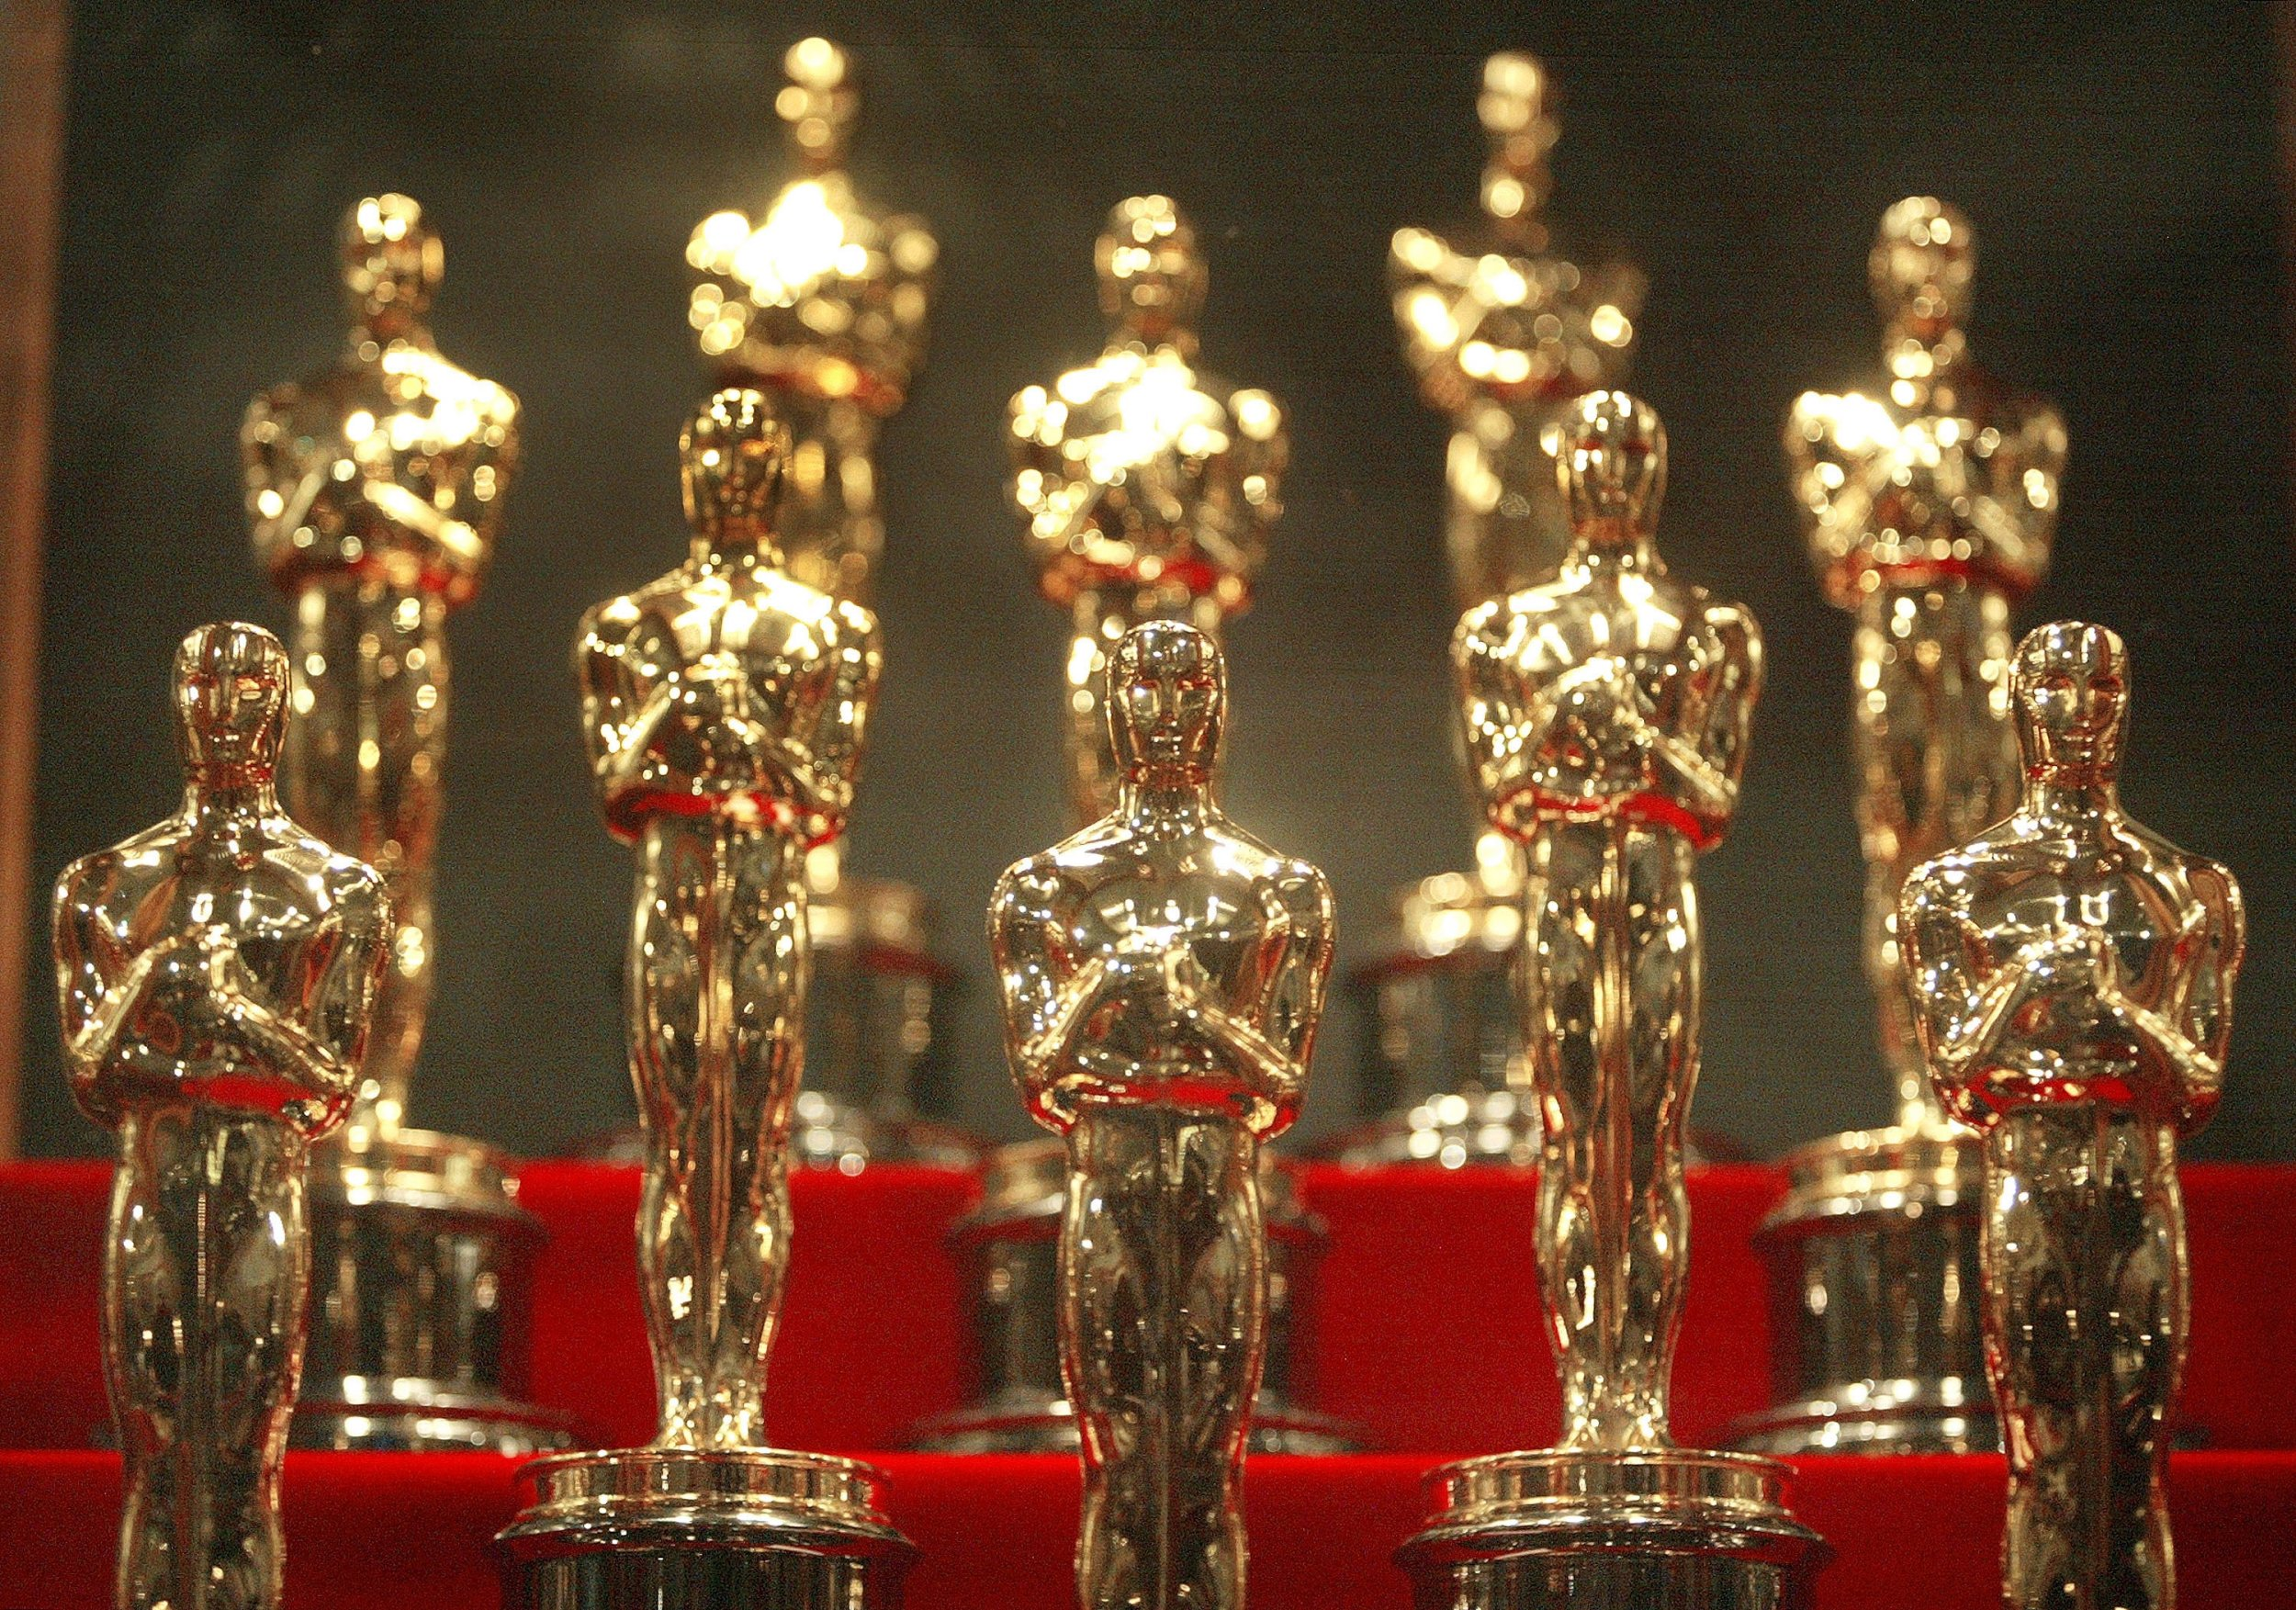 oscars (Getty) CHICAGO - JANUARY 23: Oscar statuettes are displayed during an unveiling of the 50 Oscar statuettes to be awarded at the 76th Academy Awards ceremony January 23, 2004 at the Museum of Science and Industry in Chicago, Illinois. The statuettes are made in Chicago by R.S. Owens and Company. (Photo by Tim Boyle/Getty Images)